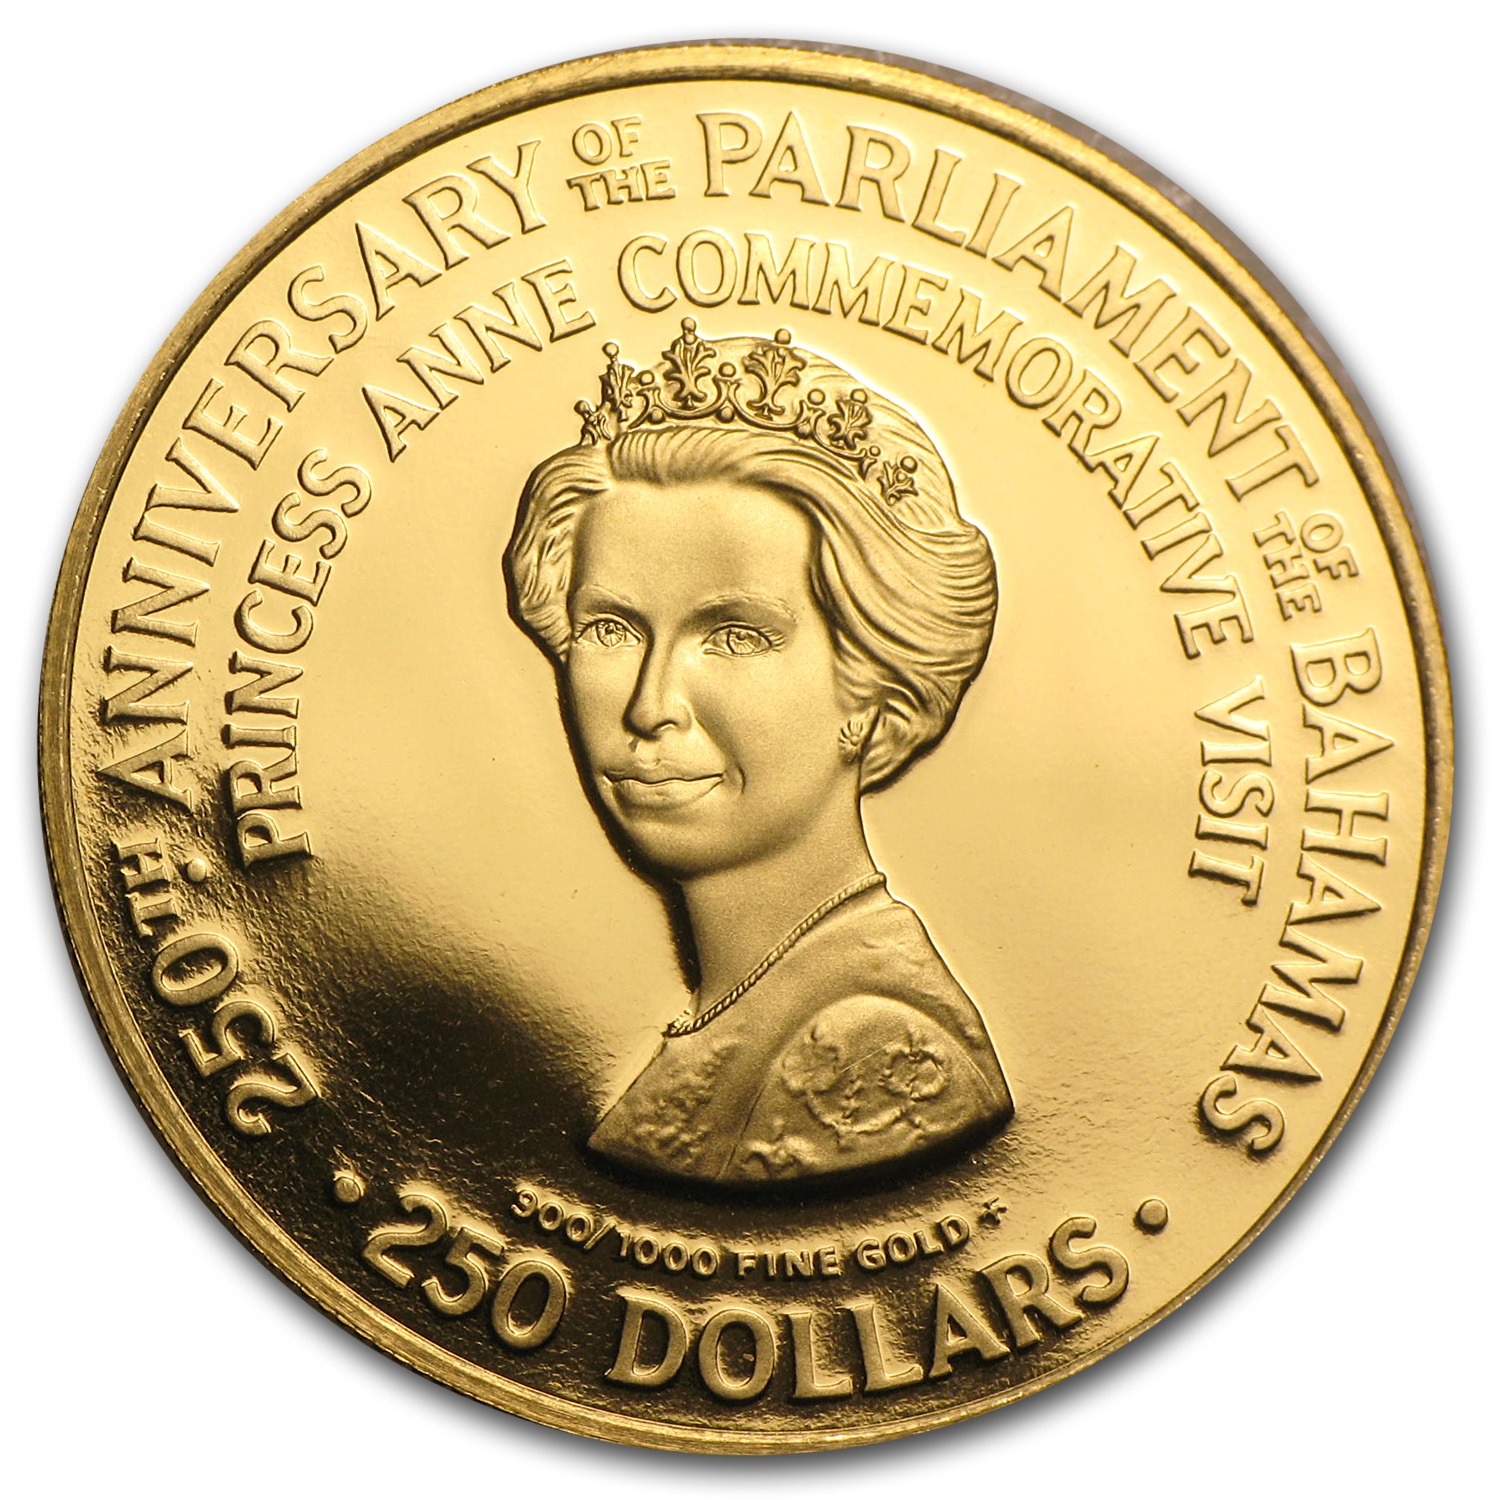 1979 Bahamas Proof Gold Two Hundred-Fifty Dollars